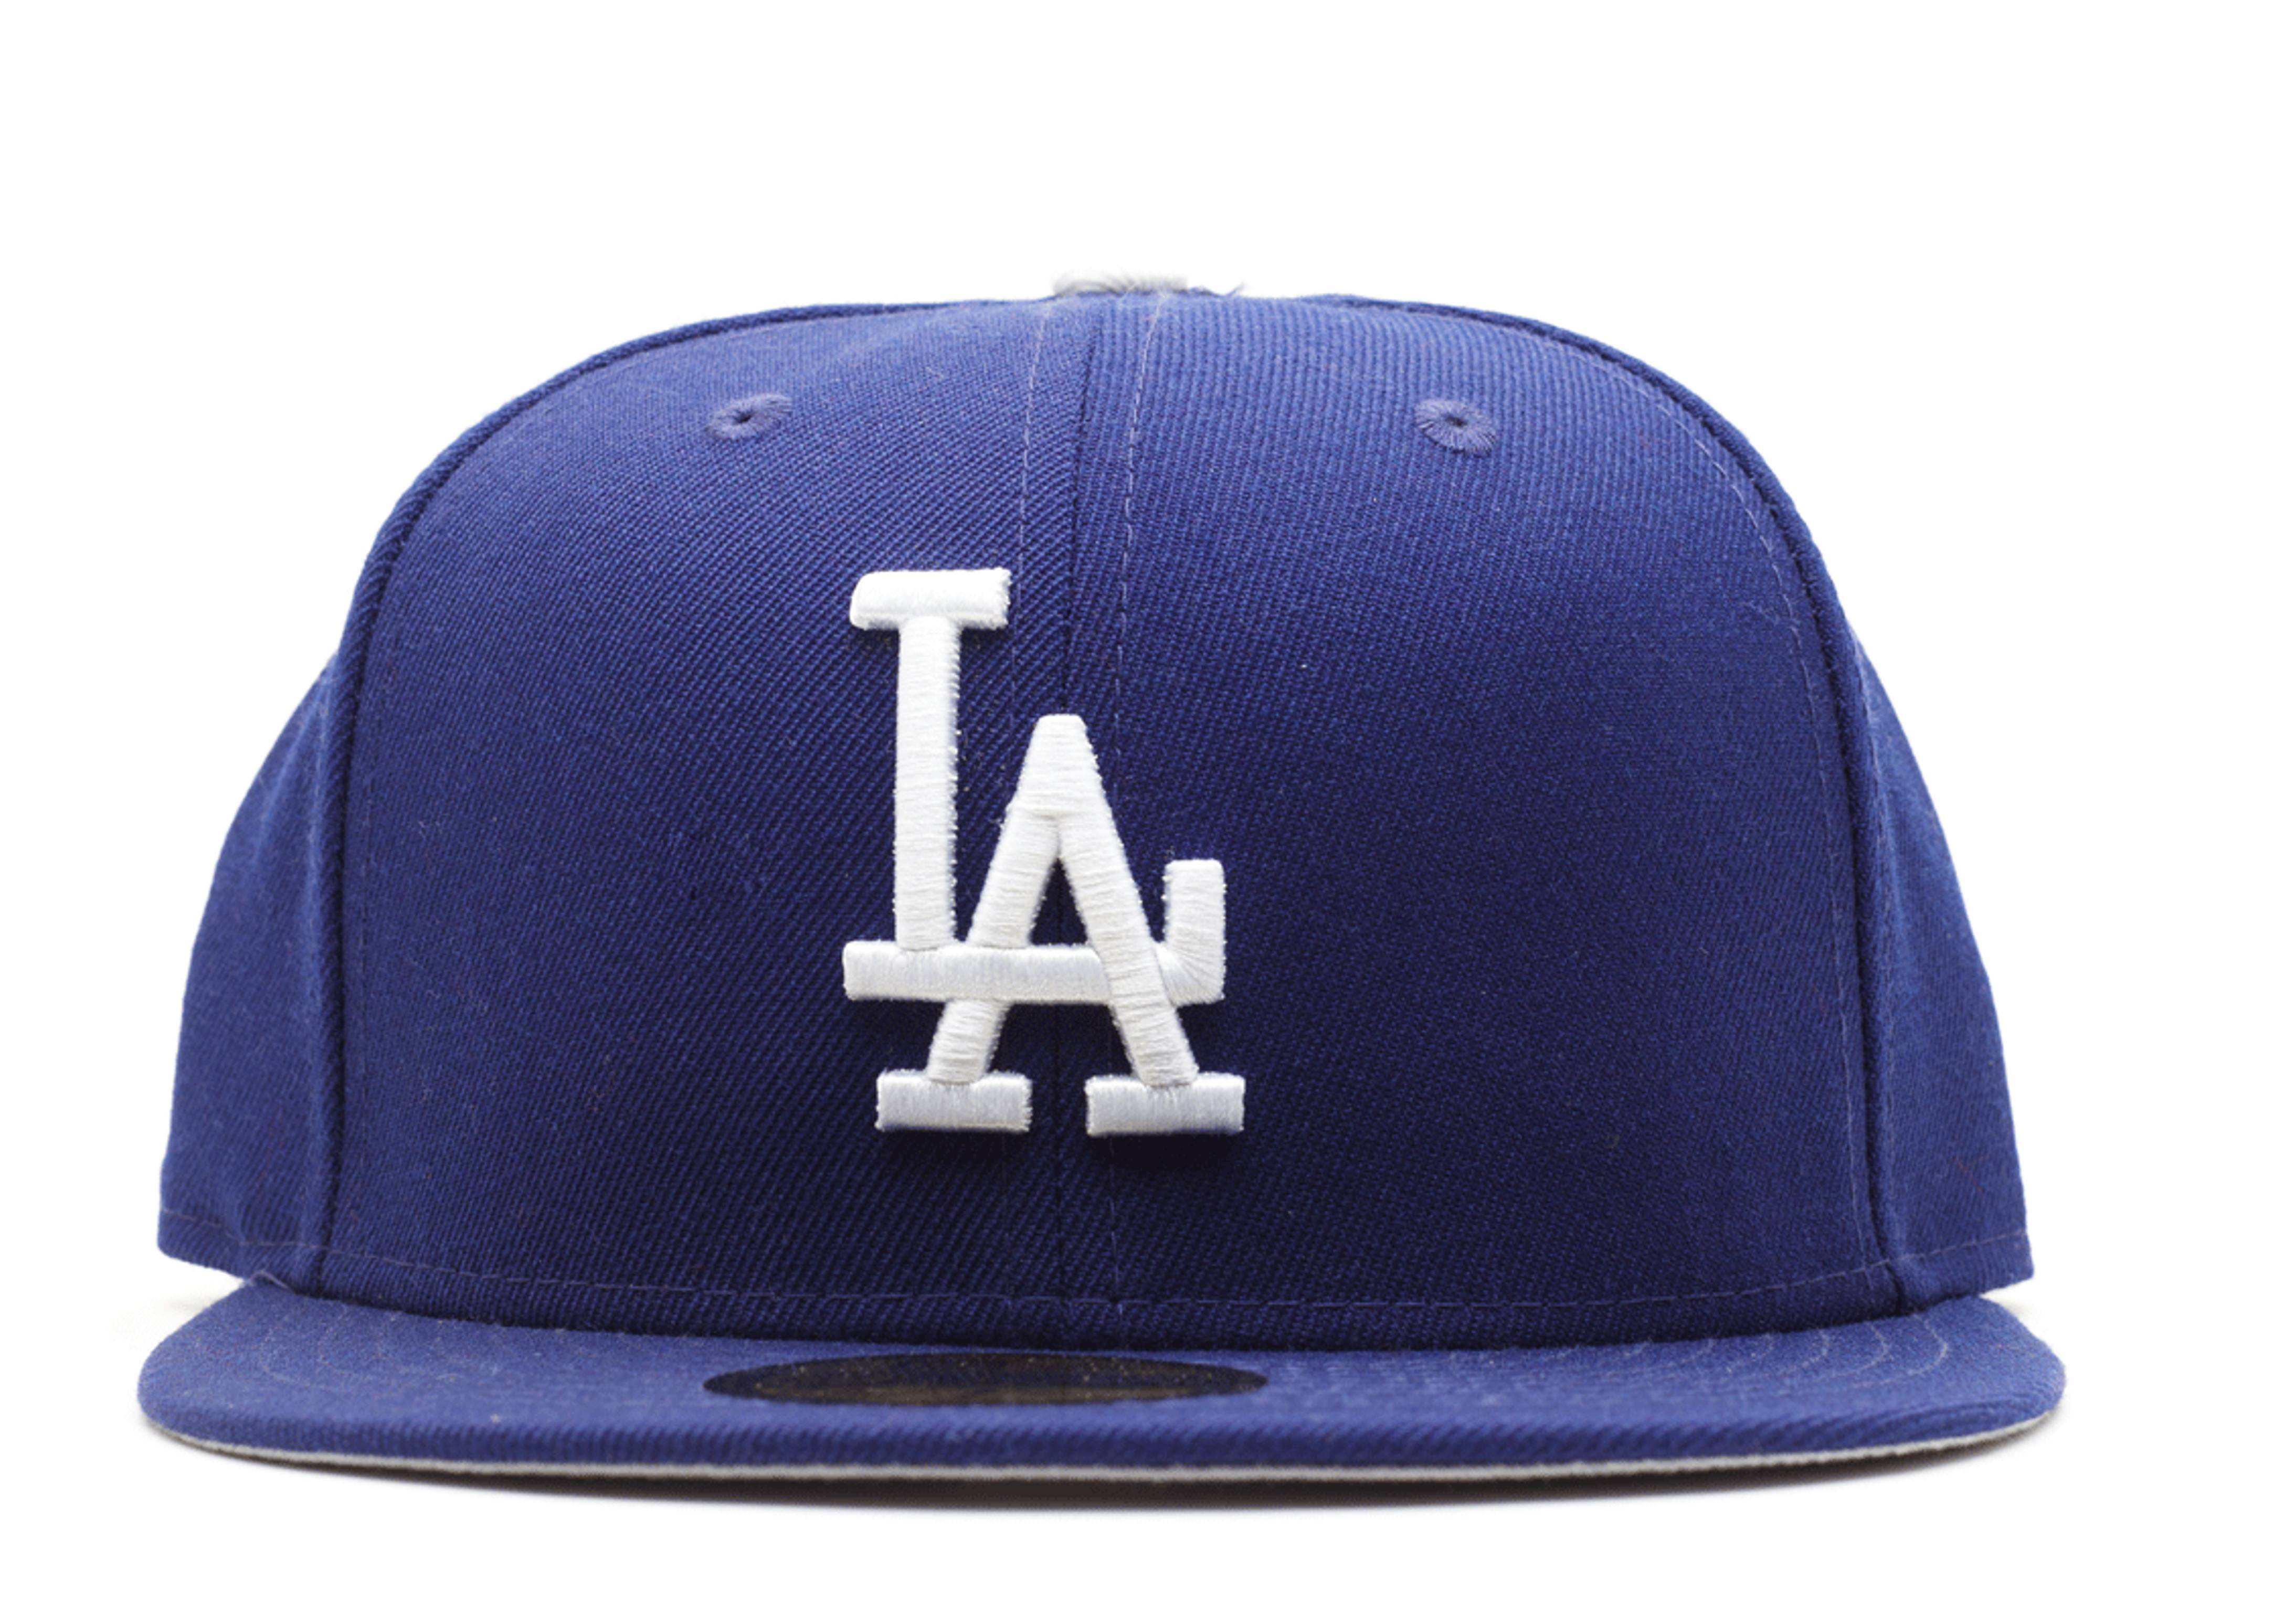 """los angeles dodgers fitted """"1999 game"""""""